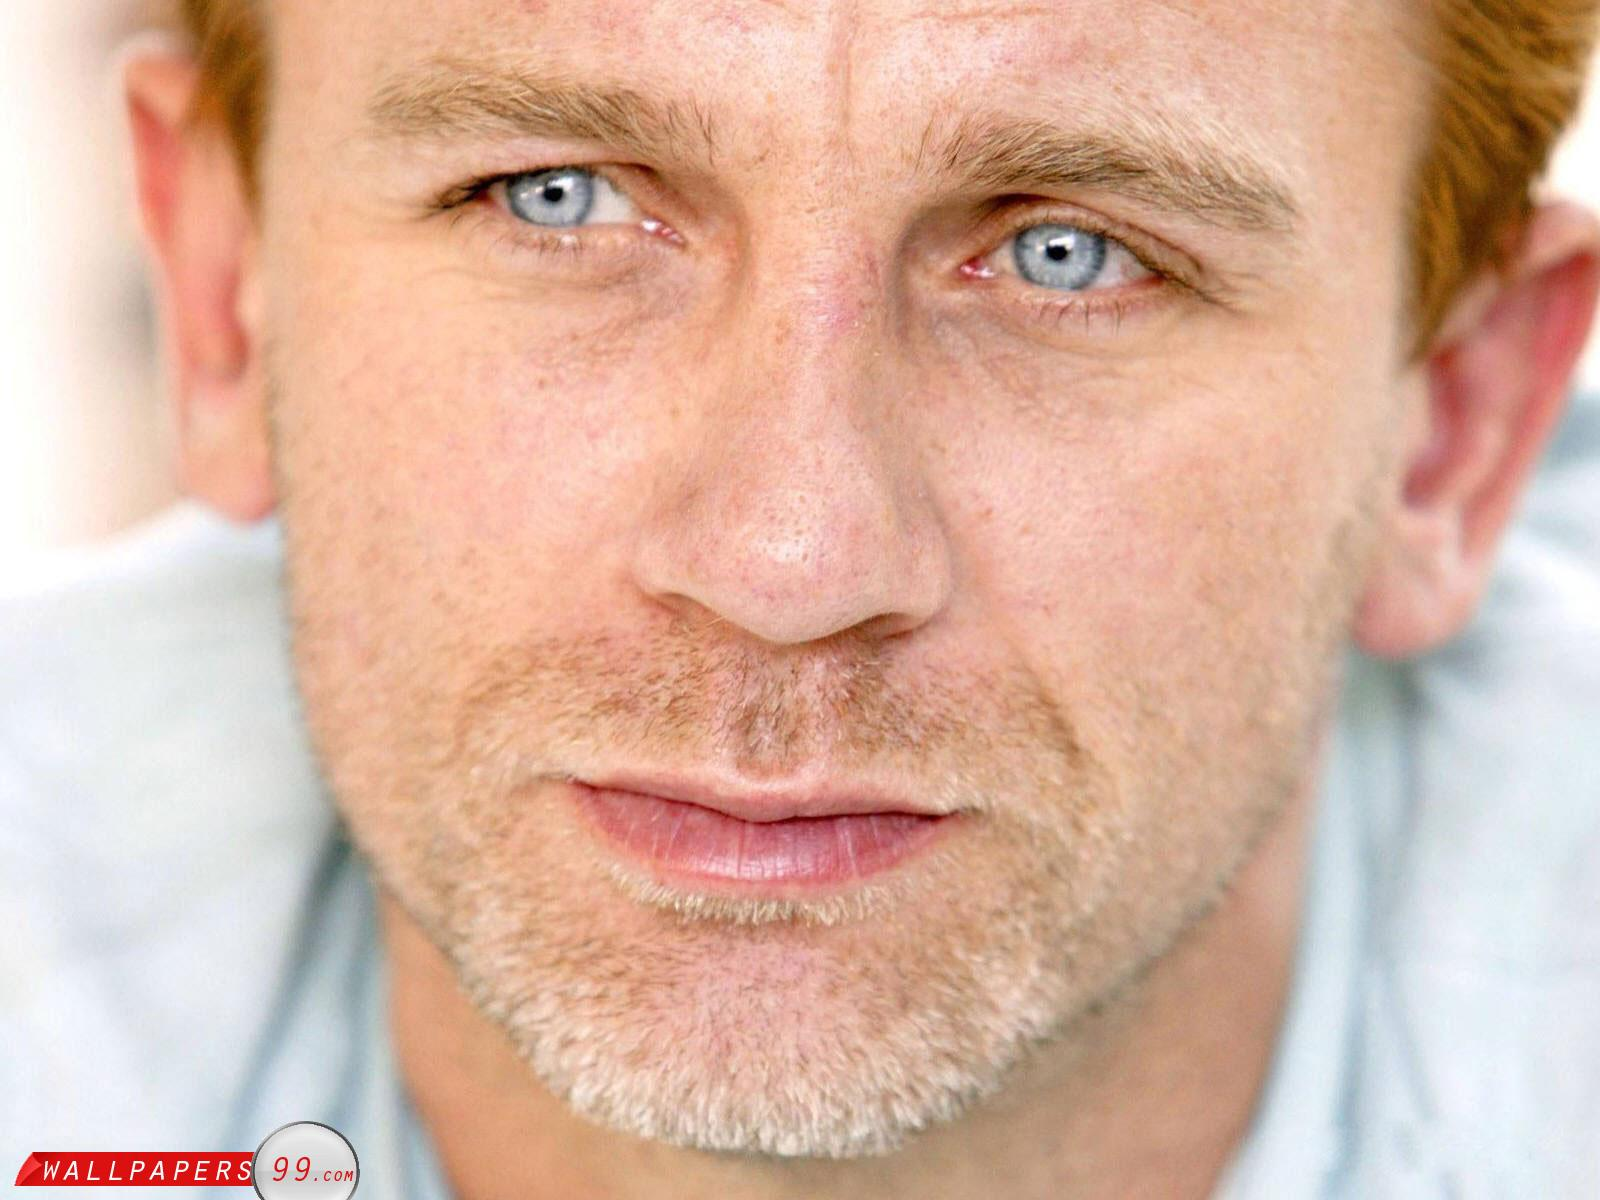 http://3.bp.blogspot.com/-Y3o9WRElv28/UJQQrjzq1ZI/AAAAAAAAeBE/MJ4D6505fPs/s1600/daniel-craig-wallpapers-so-close.jpg